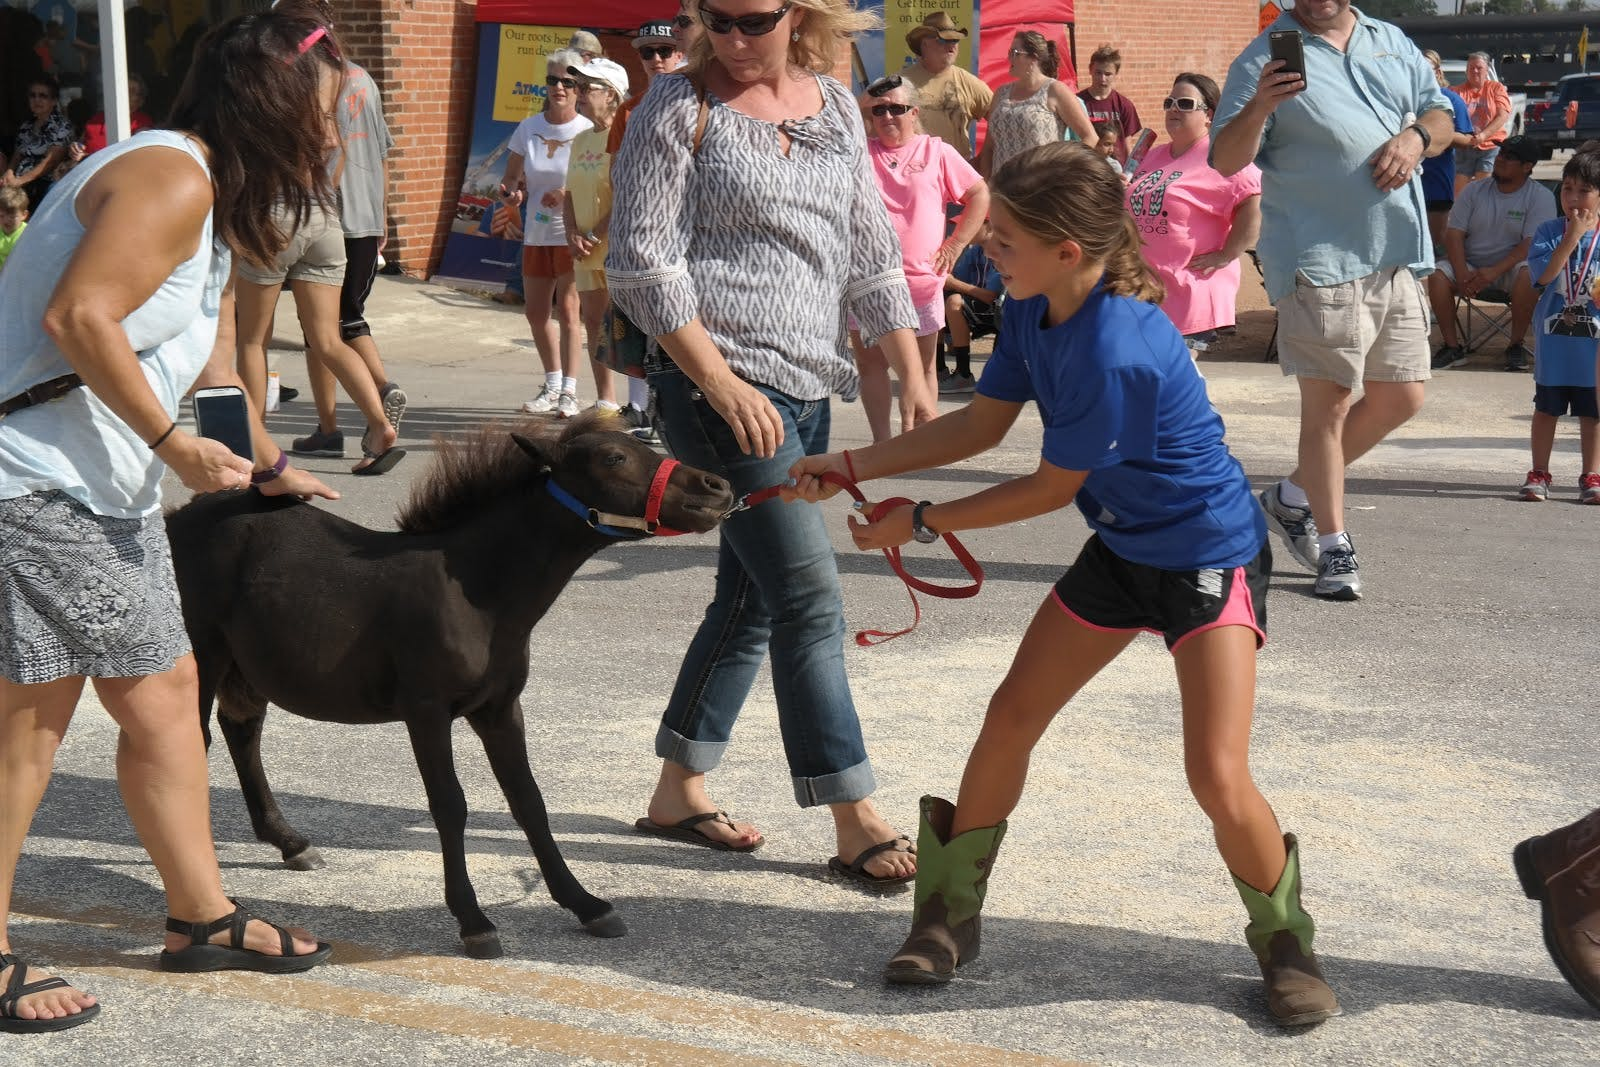 No pet parade is complete without an uncooperative Lil Sebastian.